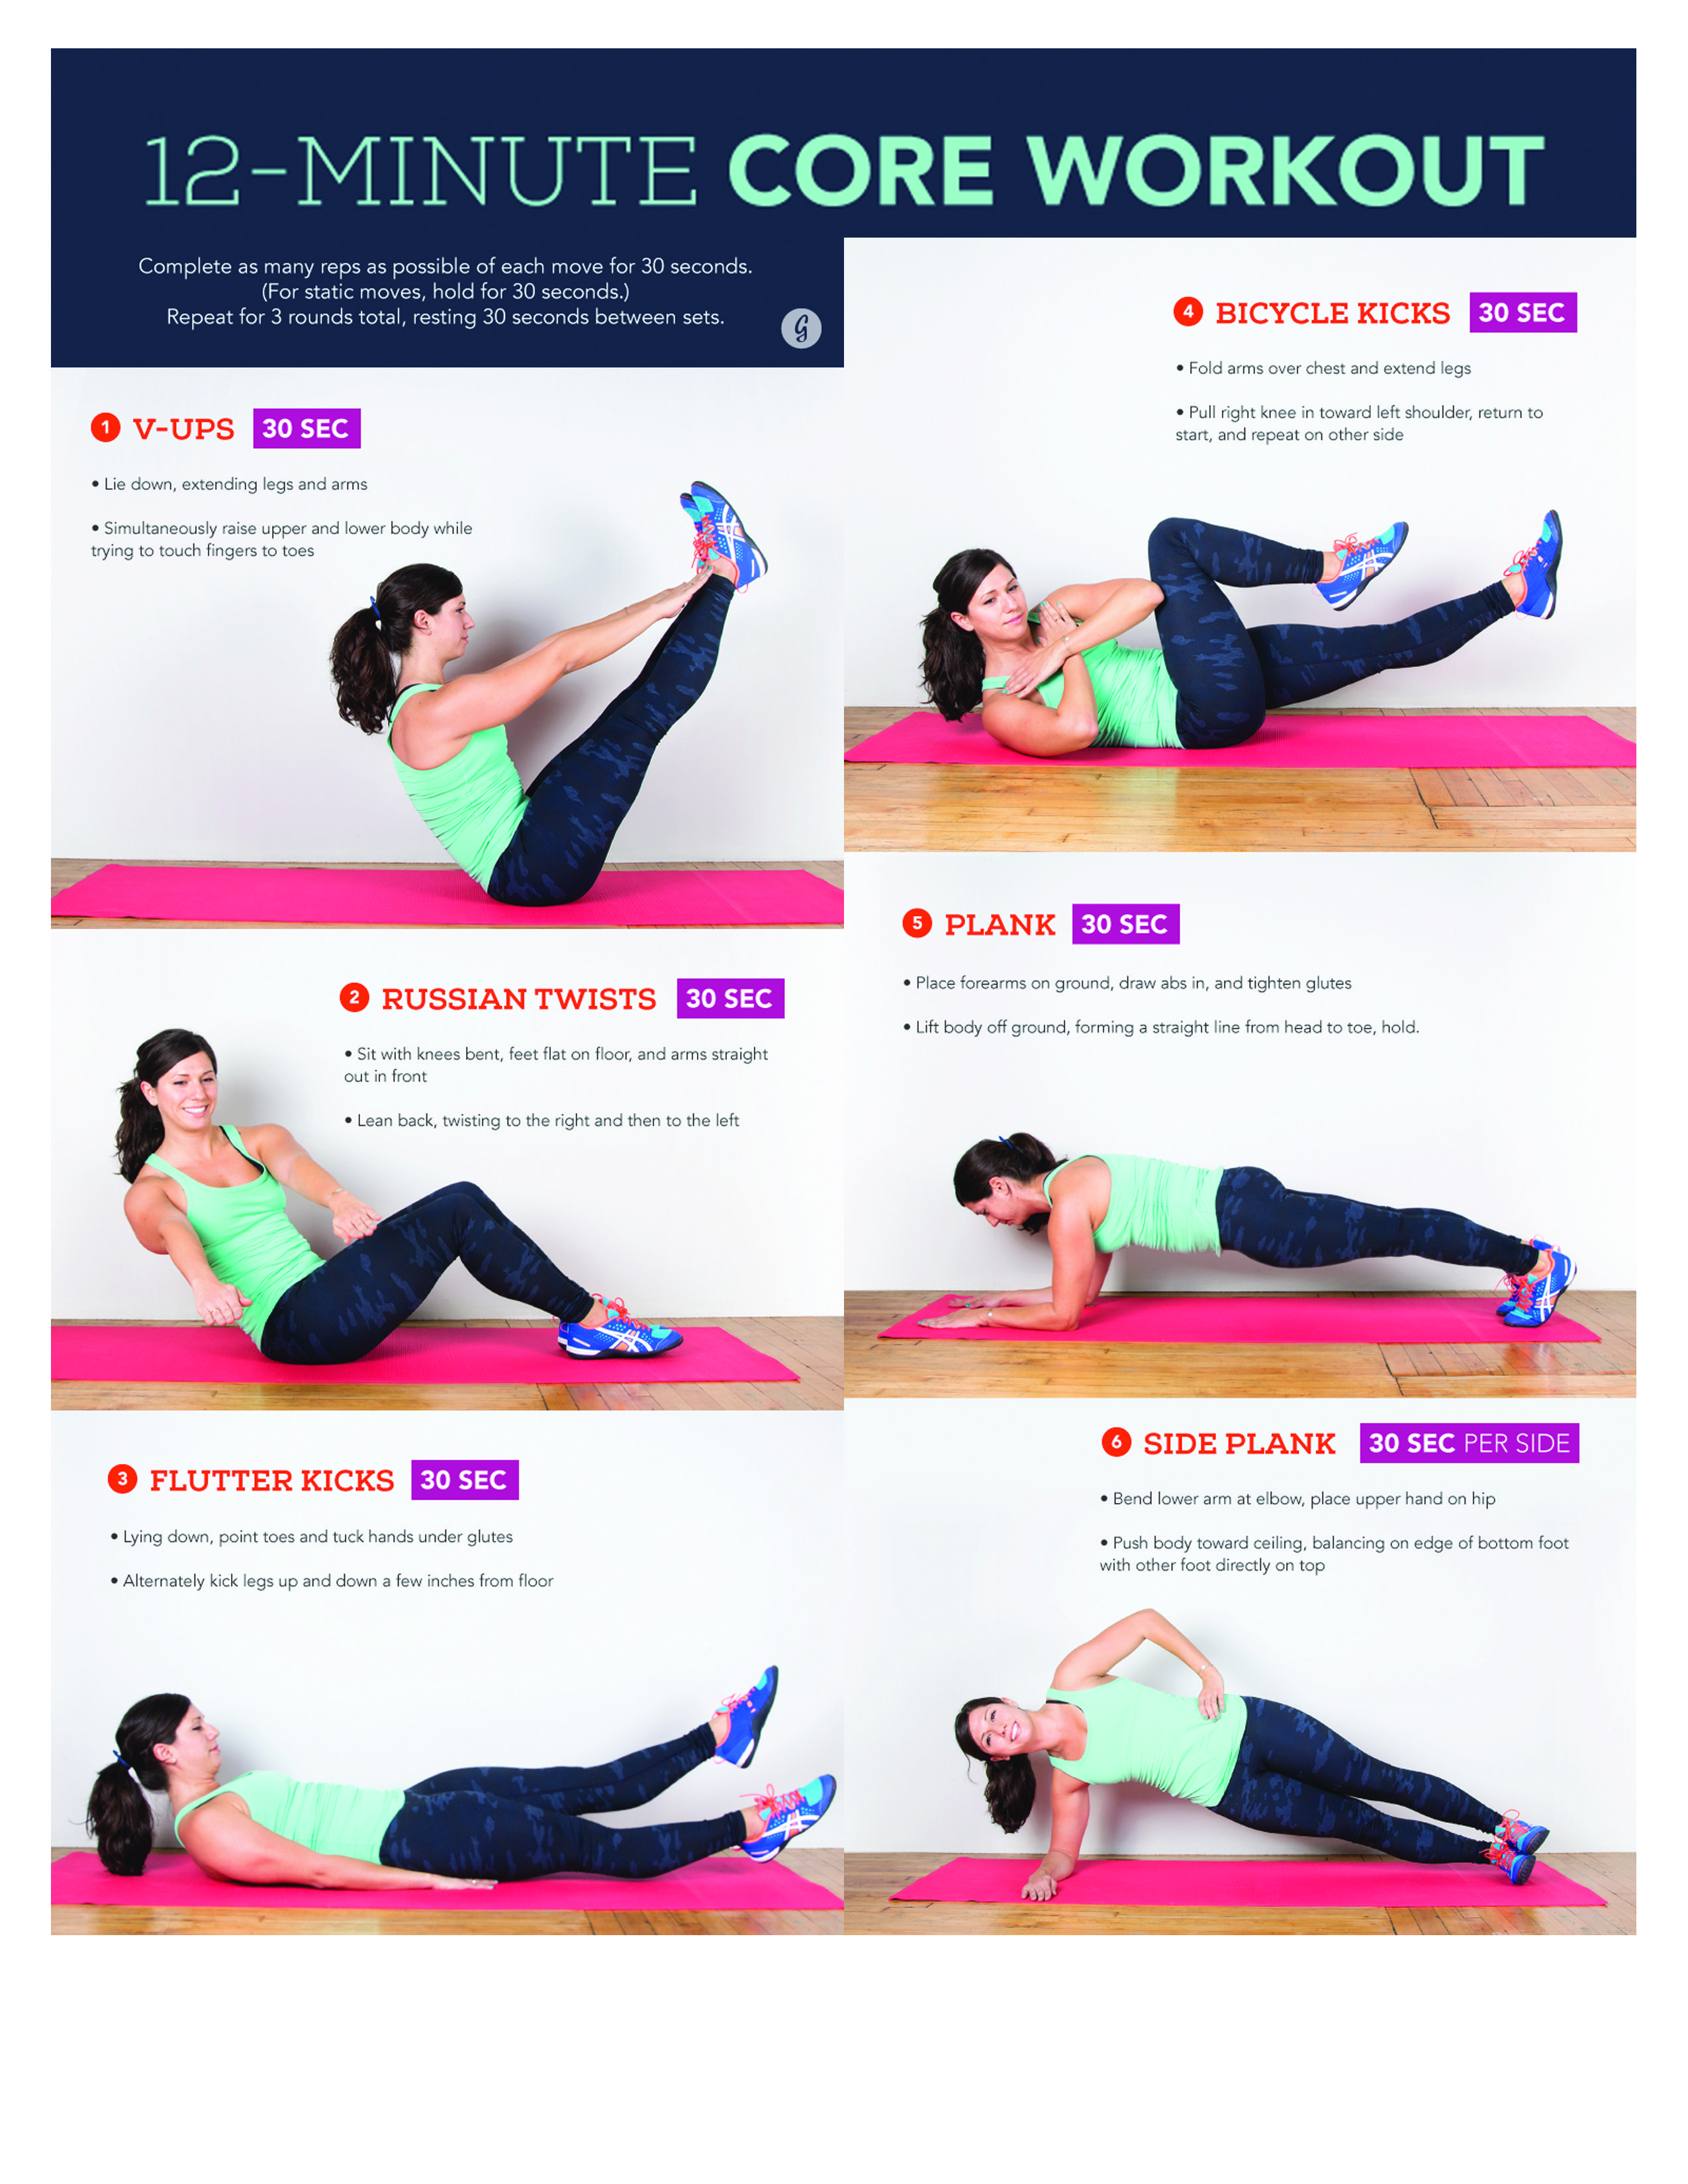 Pin By James Massey On Health Hacks Core Workout Workout